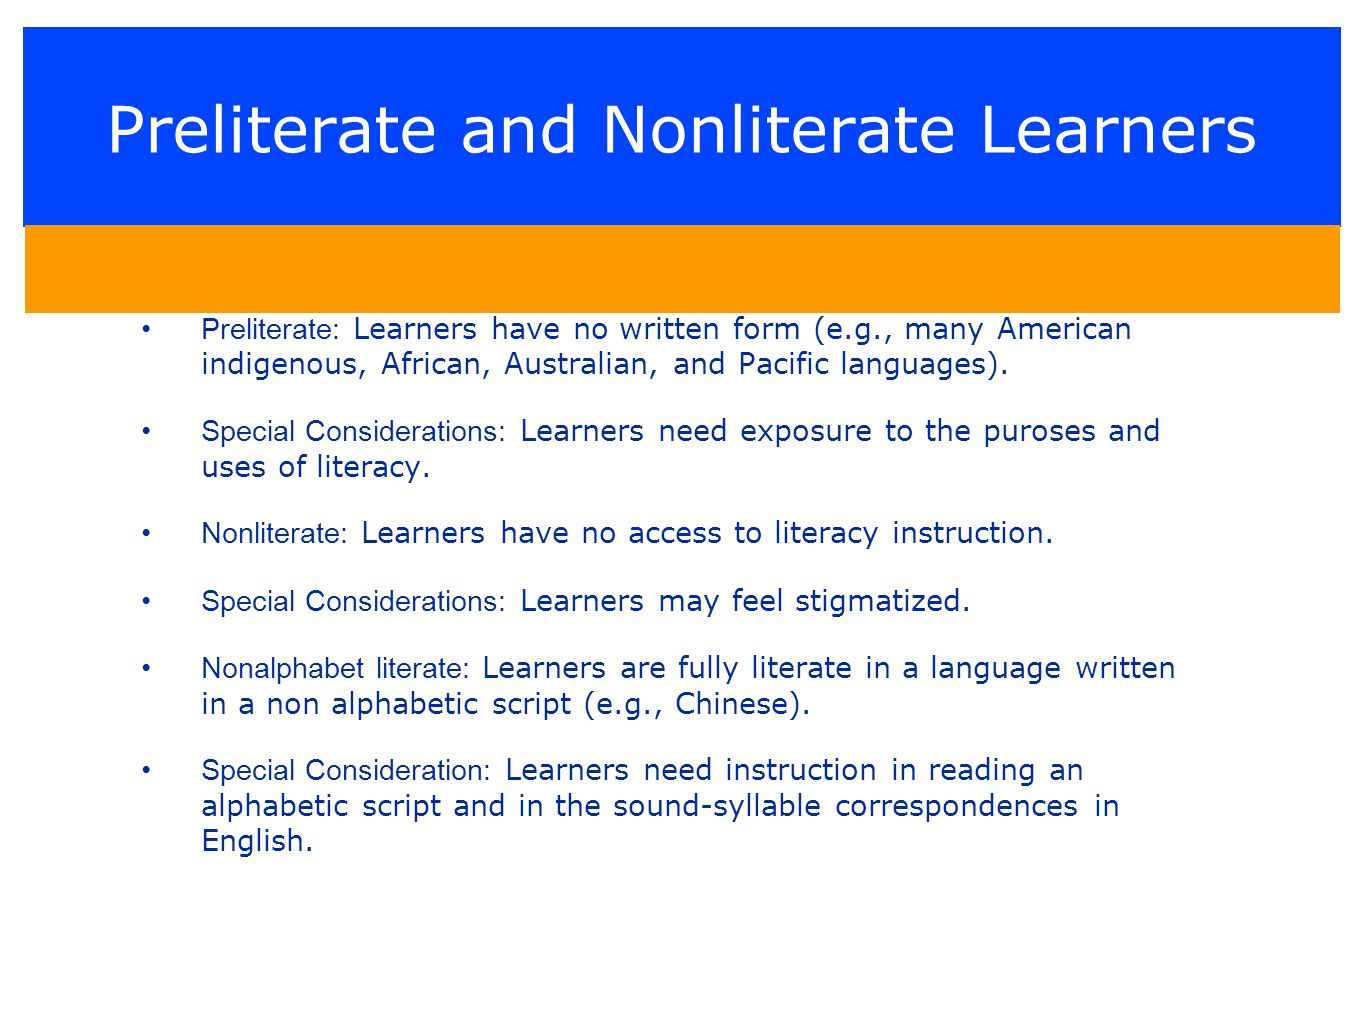 Preliterate and Nonliterate Learners Preliterate: Learners have no written form (e.g., many American indigenous, African, Australian, and Pacific languages).